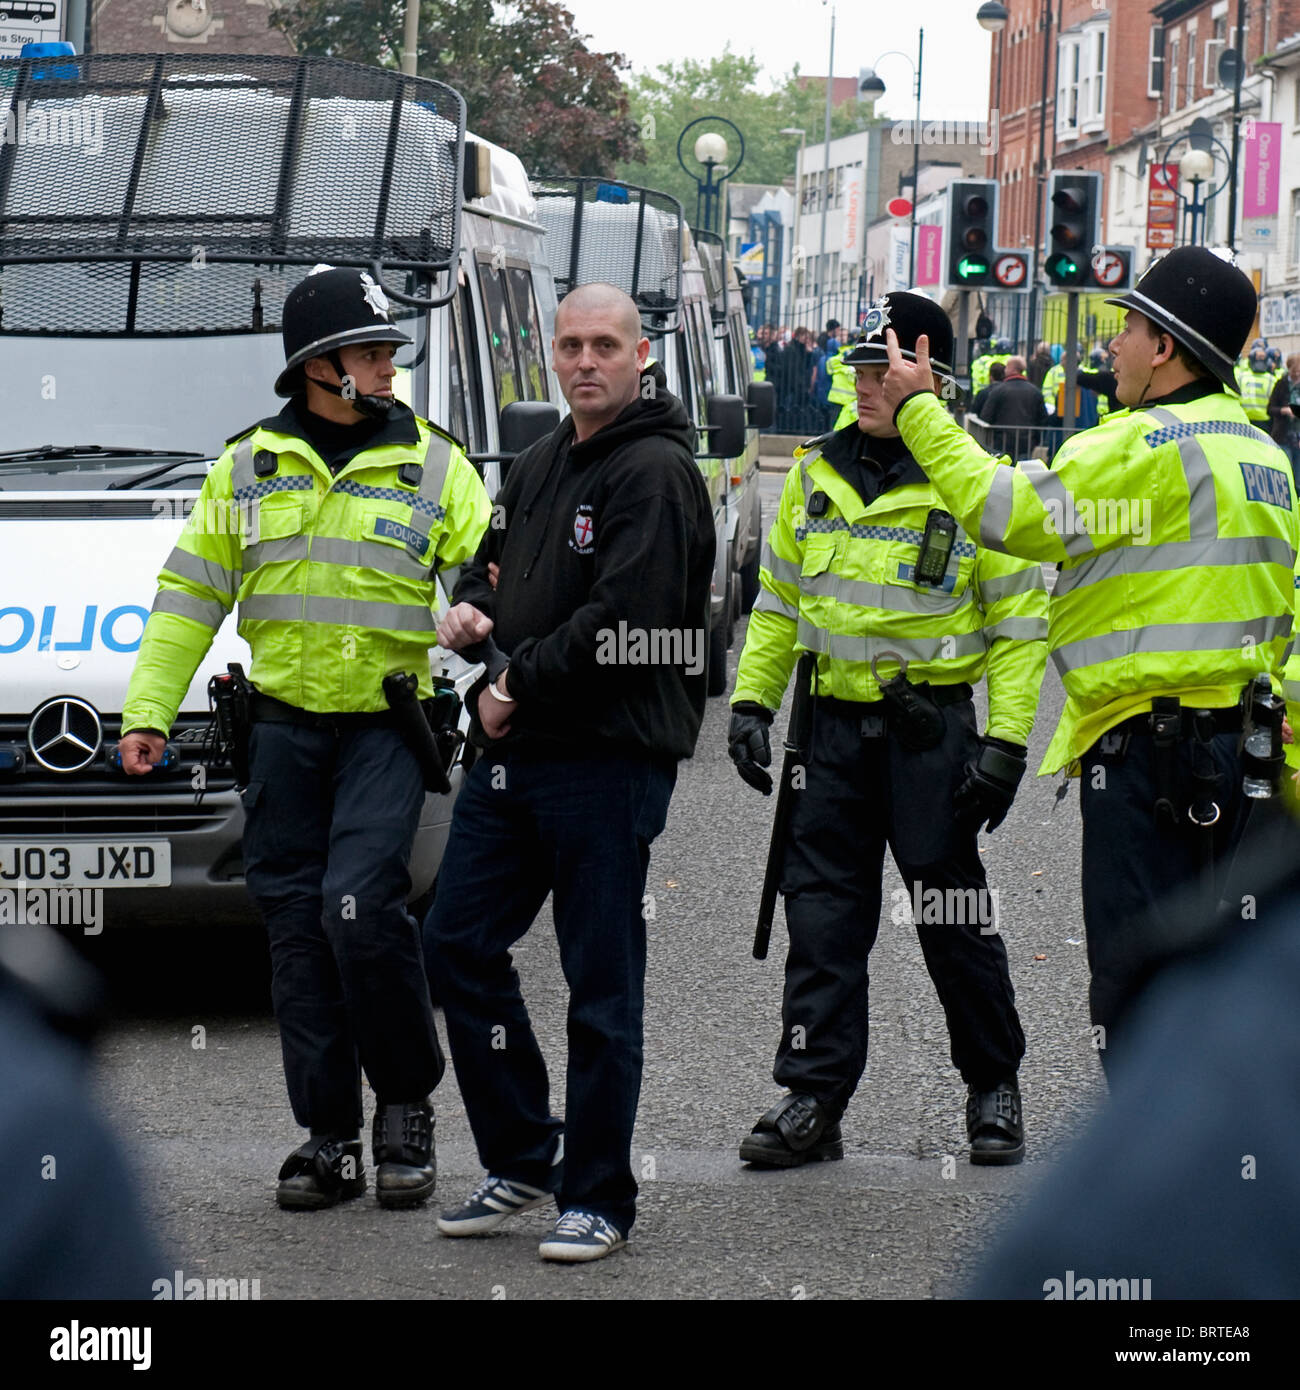 An EDL member is arrested as The English Defence League demonstrate in Leicester. 9th October 2010. - Stock Image